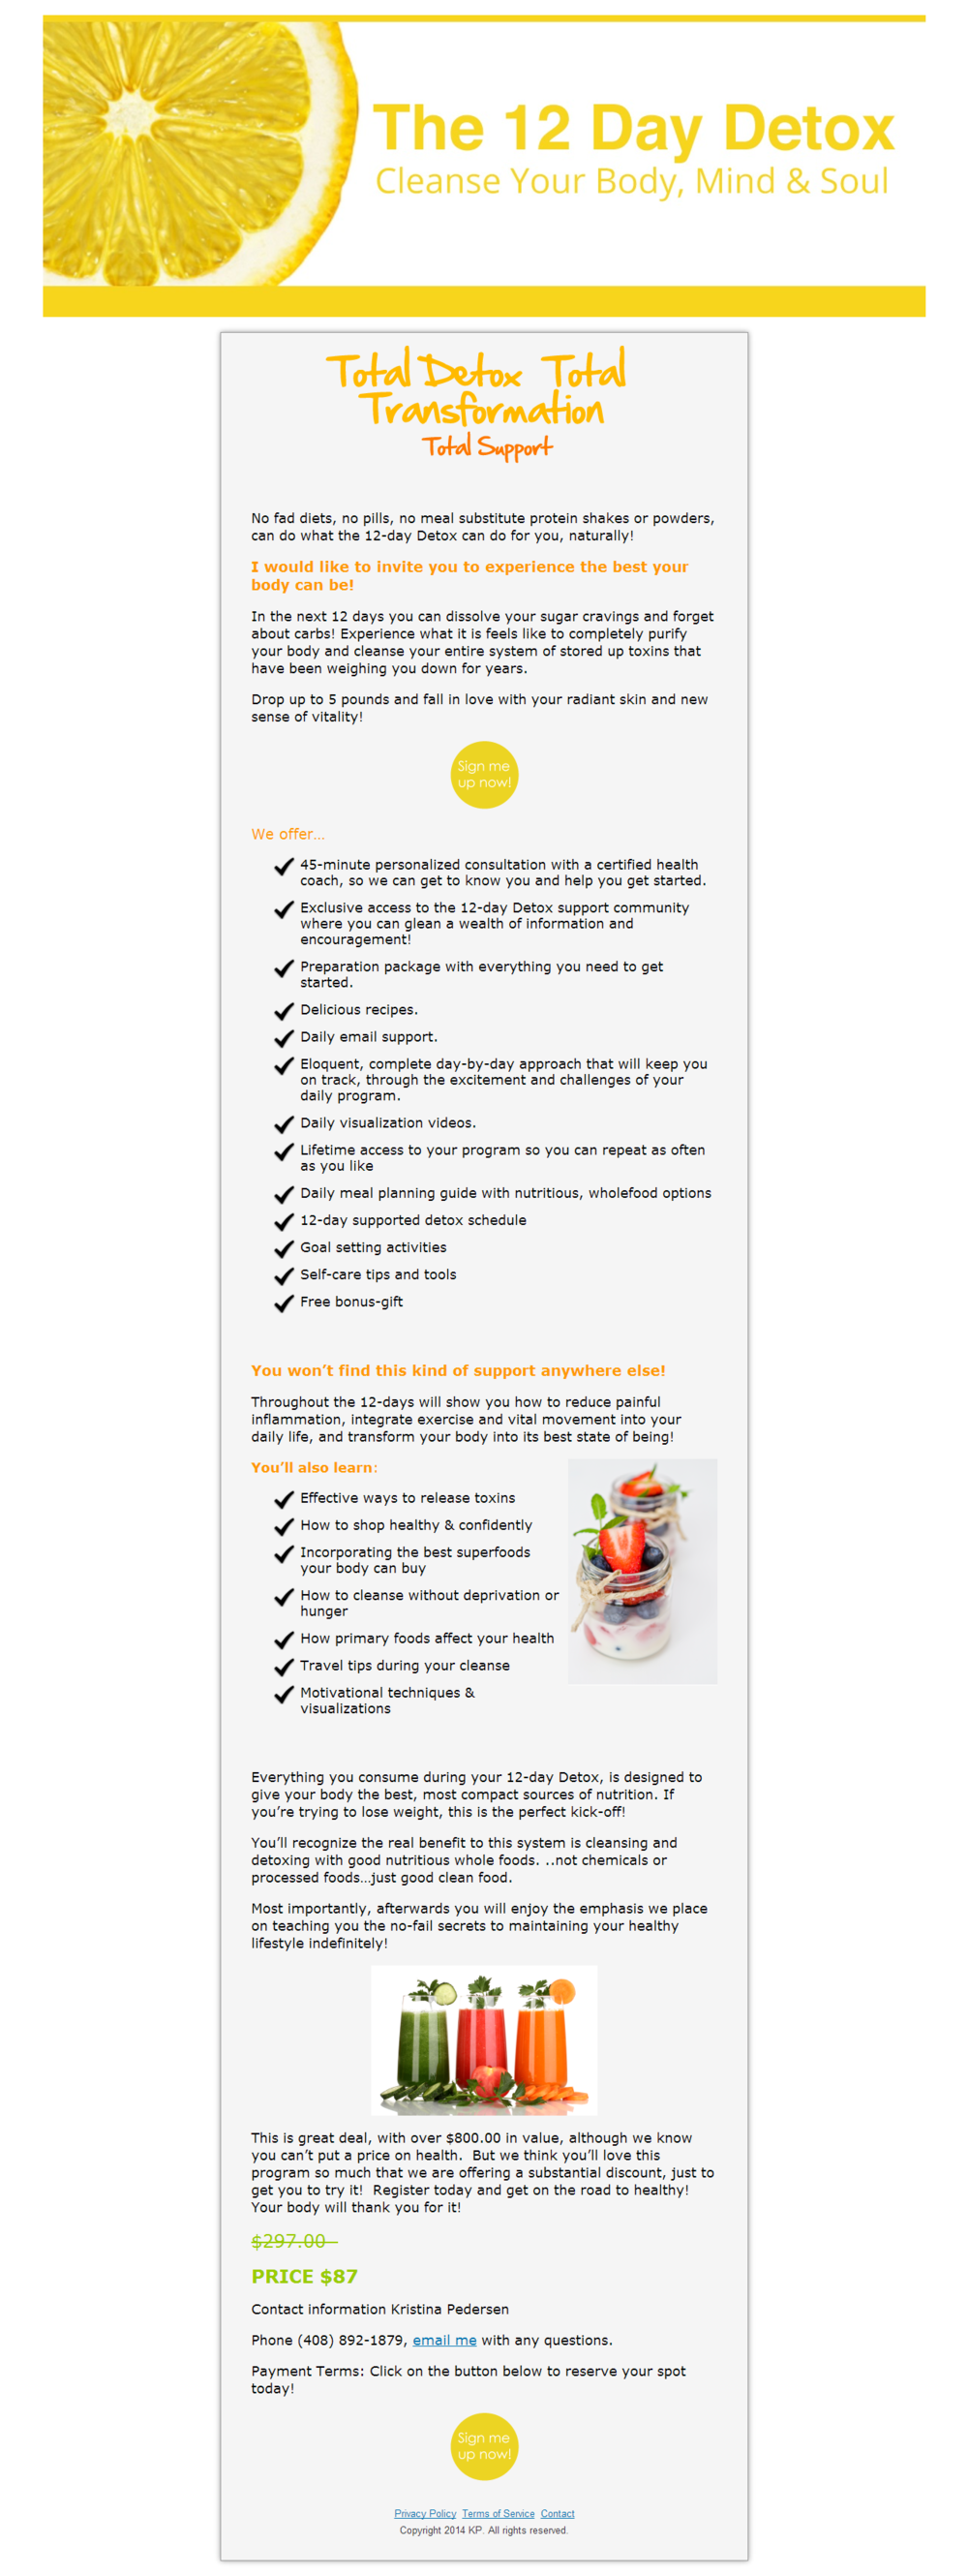 7 Day Detox - WordPress Squeeze Page